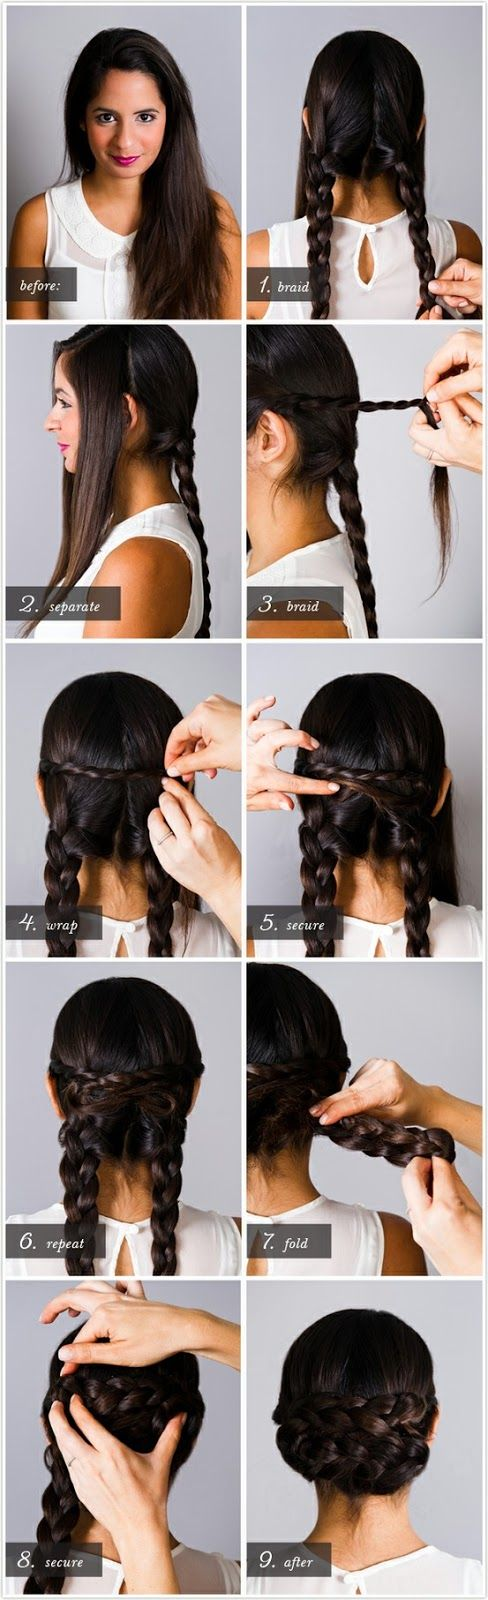 Braided up do. Good to keep hair out of your face without opting out for a simple ponytail.